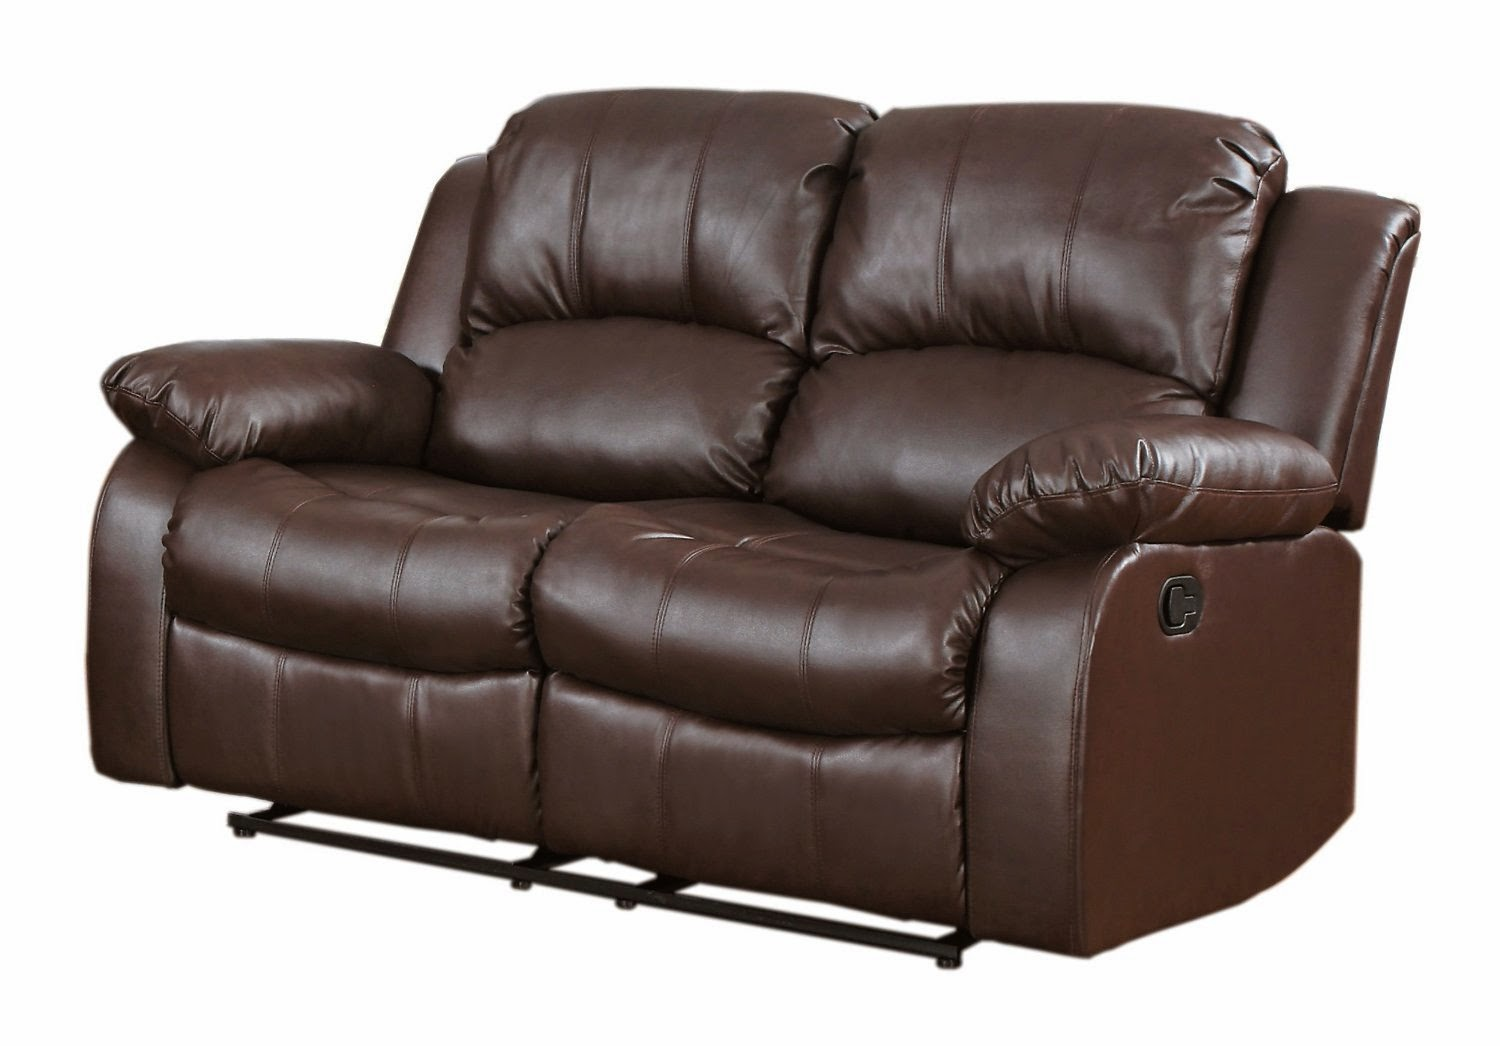 Corsetta 2 Seater Recliner Sofa The Best Reclining Sofas Ratings Reviews: 2 Seater Leather